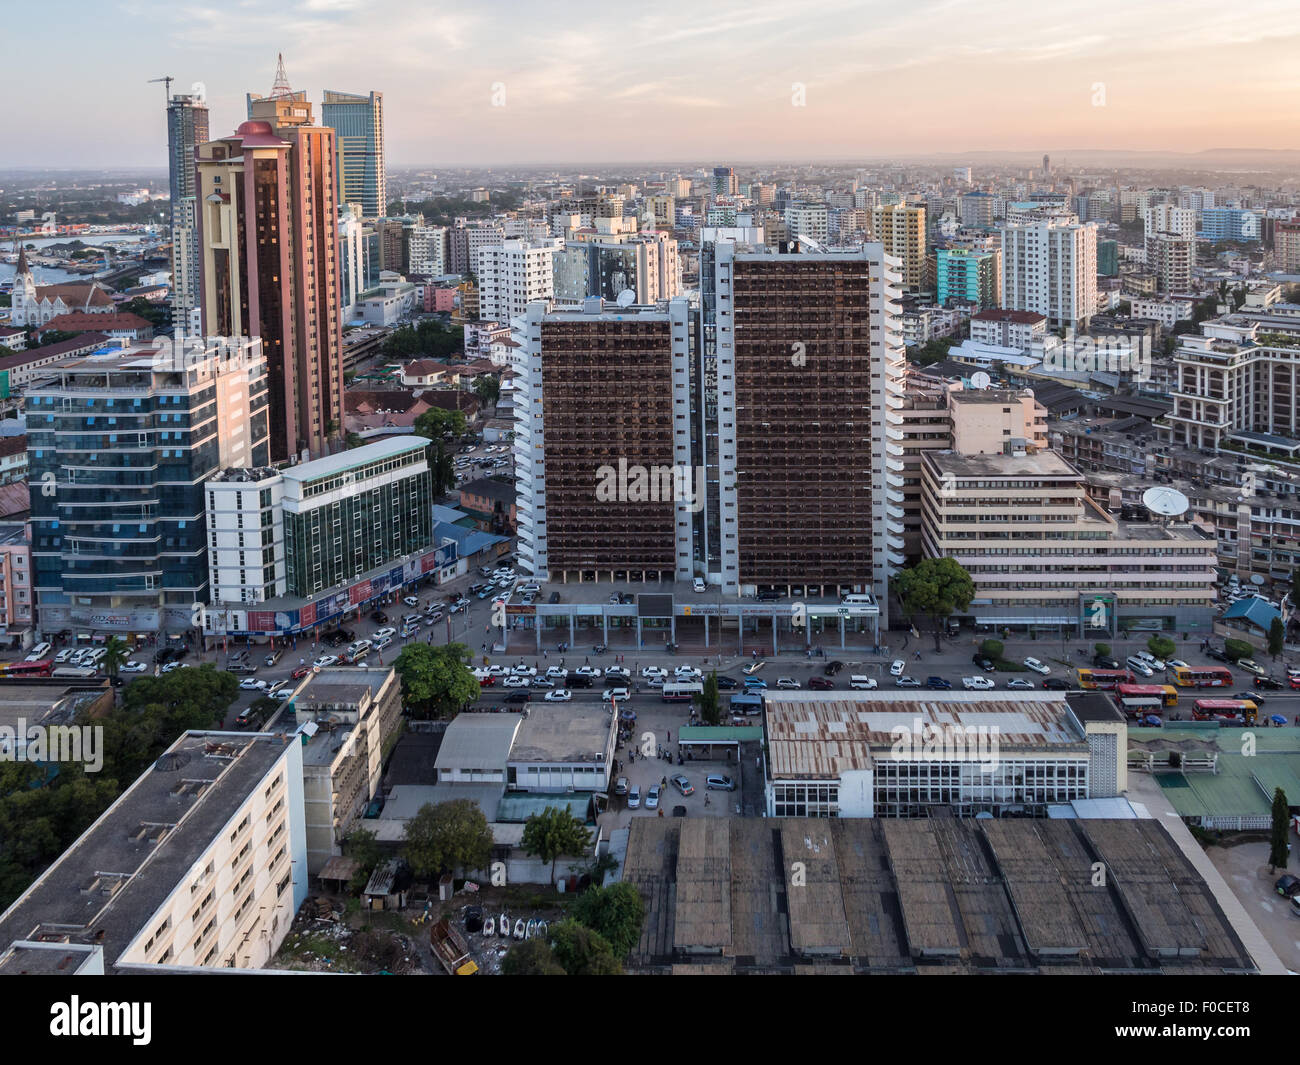 Modern skyscrappers in downtown of Dar es Salaam in Tanzania, East Africa, in the evening, at sunset. Horizontal - Stock Image